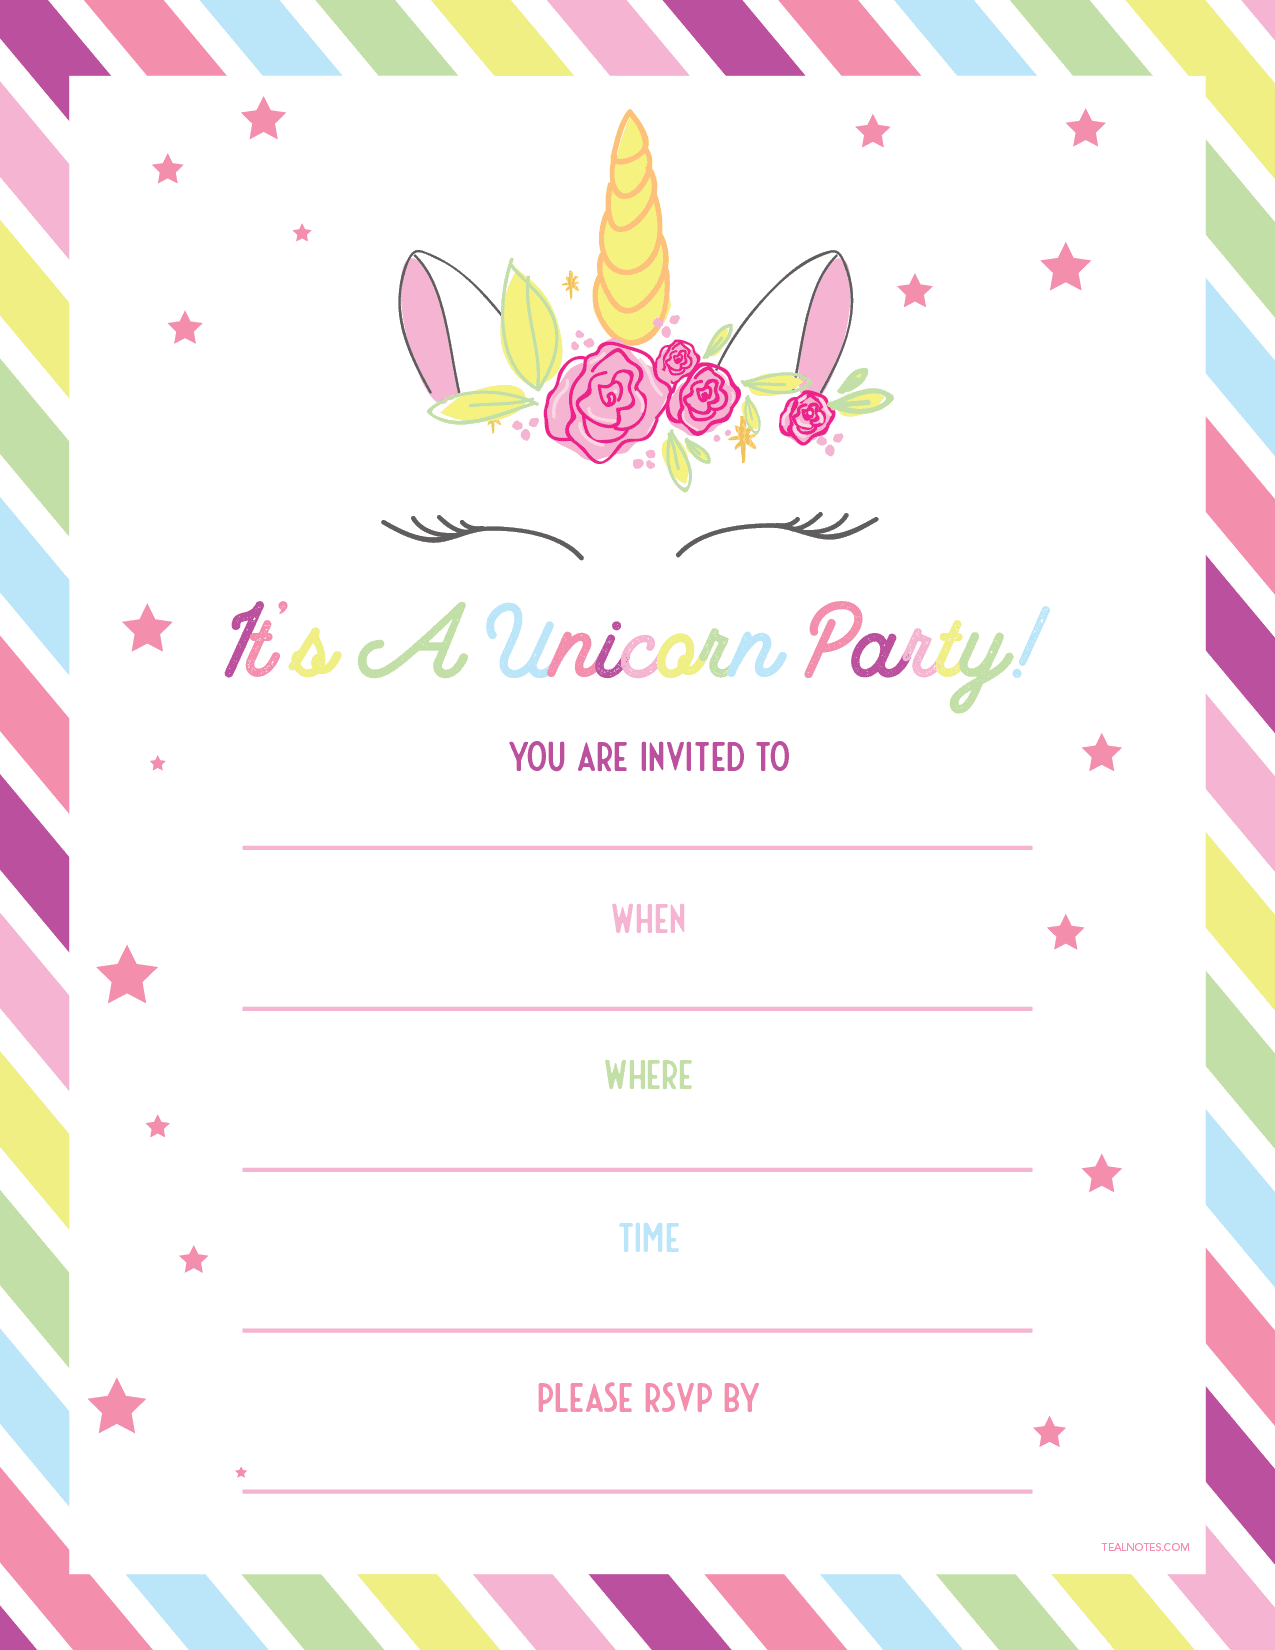 unicorn templates 17 free unicorn